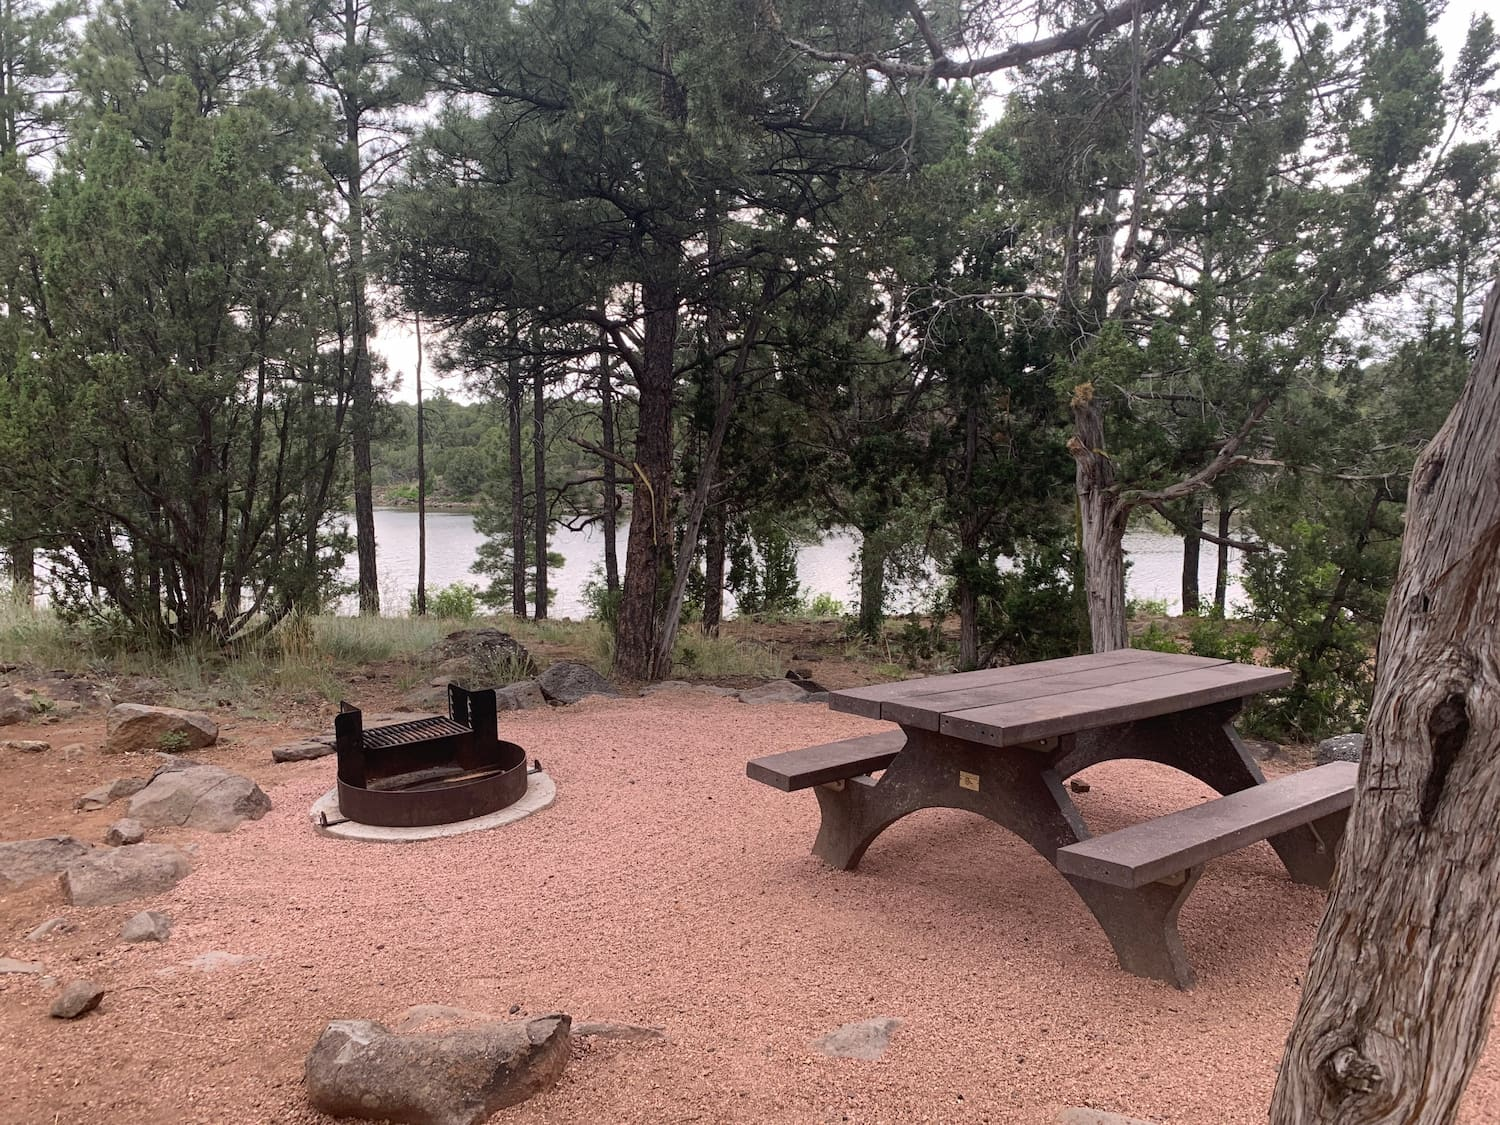 picnic bench and fire pit at campground